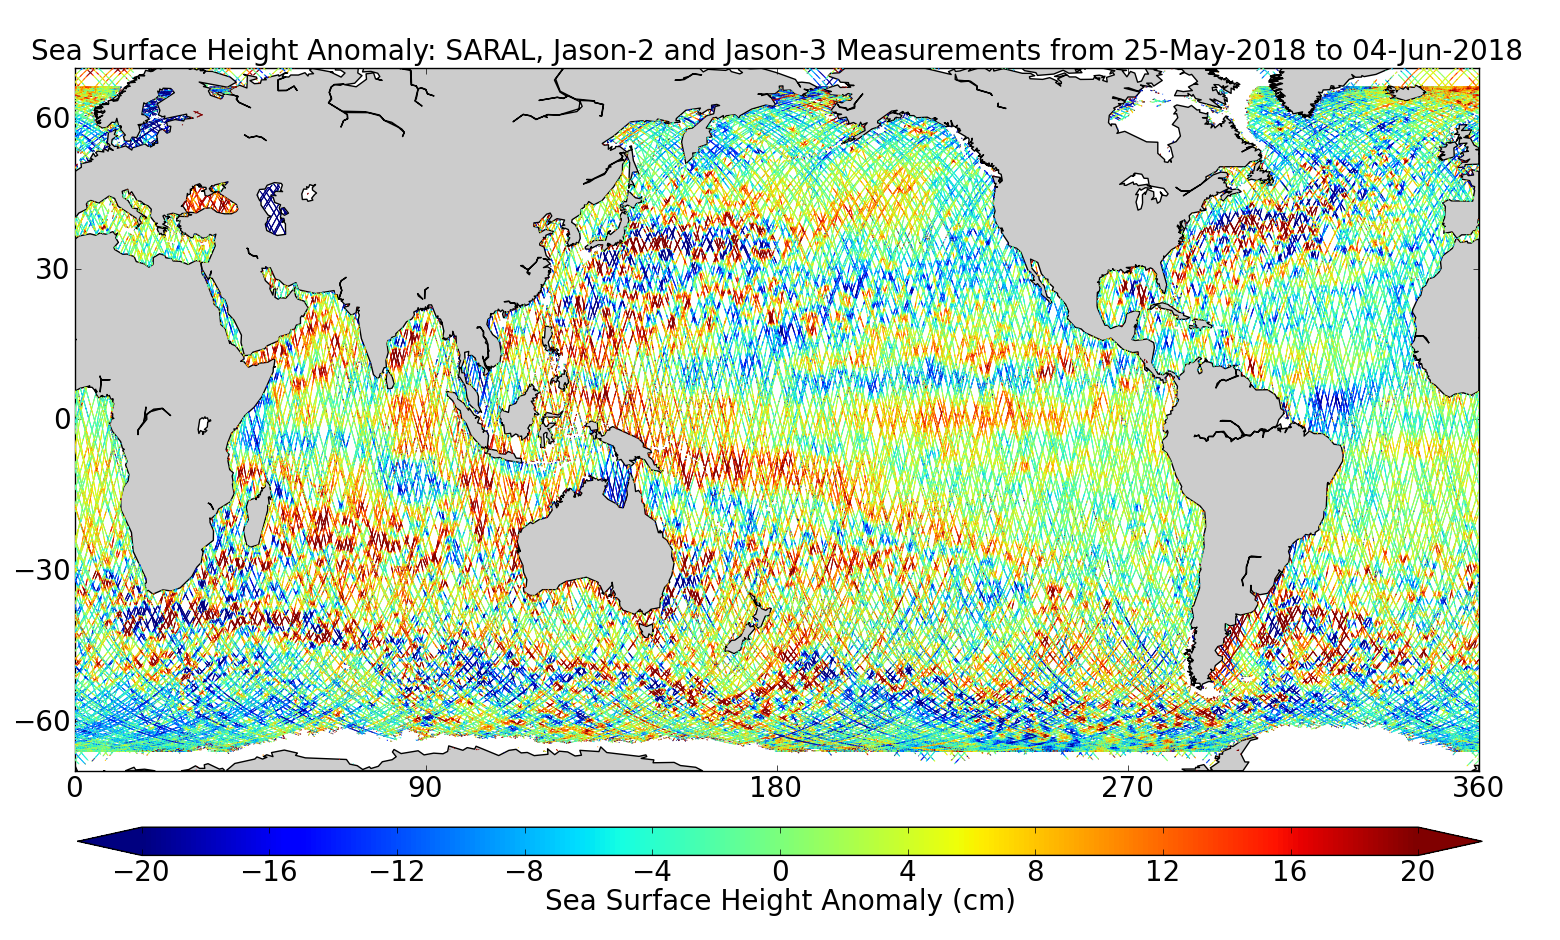 Sea Surface Height Anomaly: SARAL, Jason-2 and Jason-3 Measurements from 25-May-2018 to 04-Jun-2018